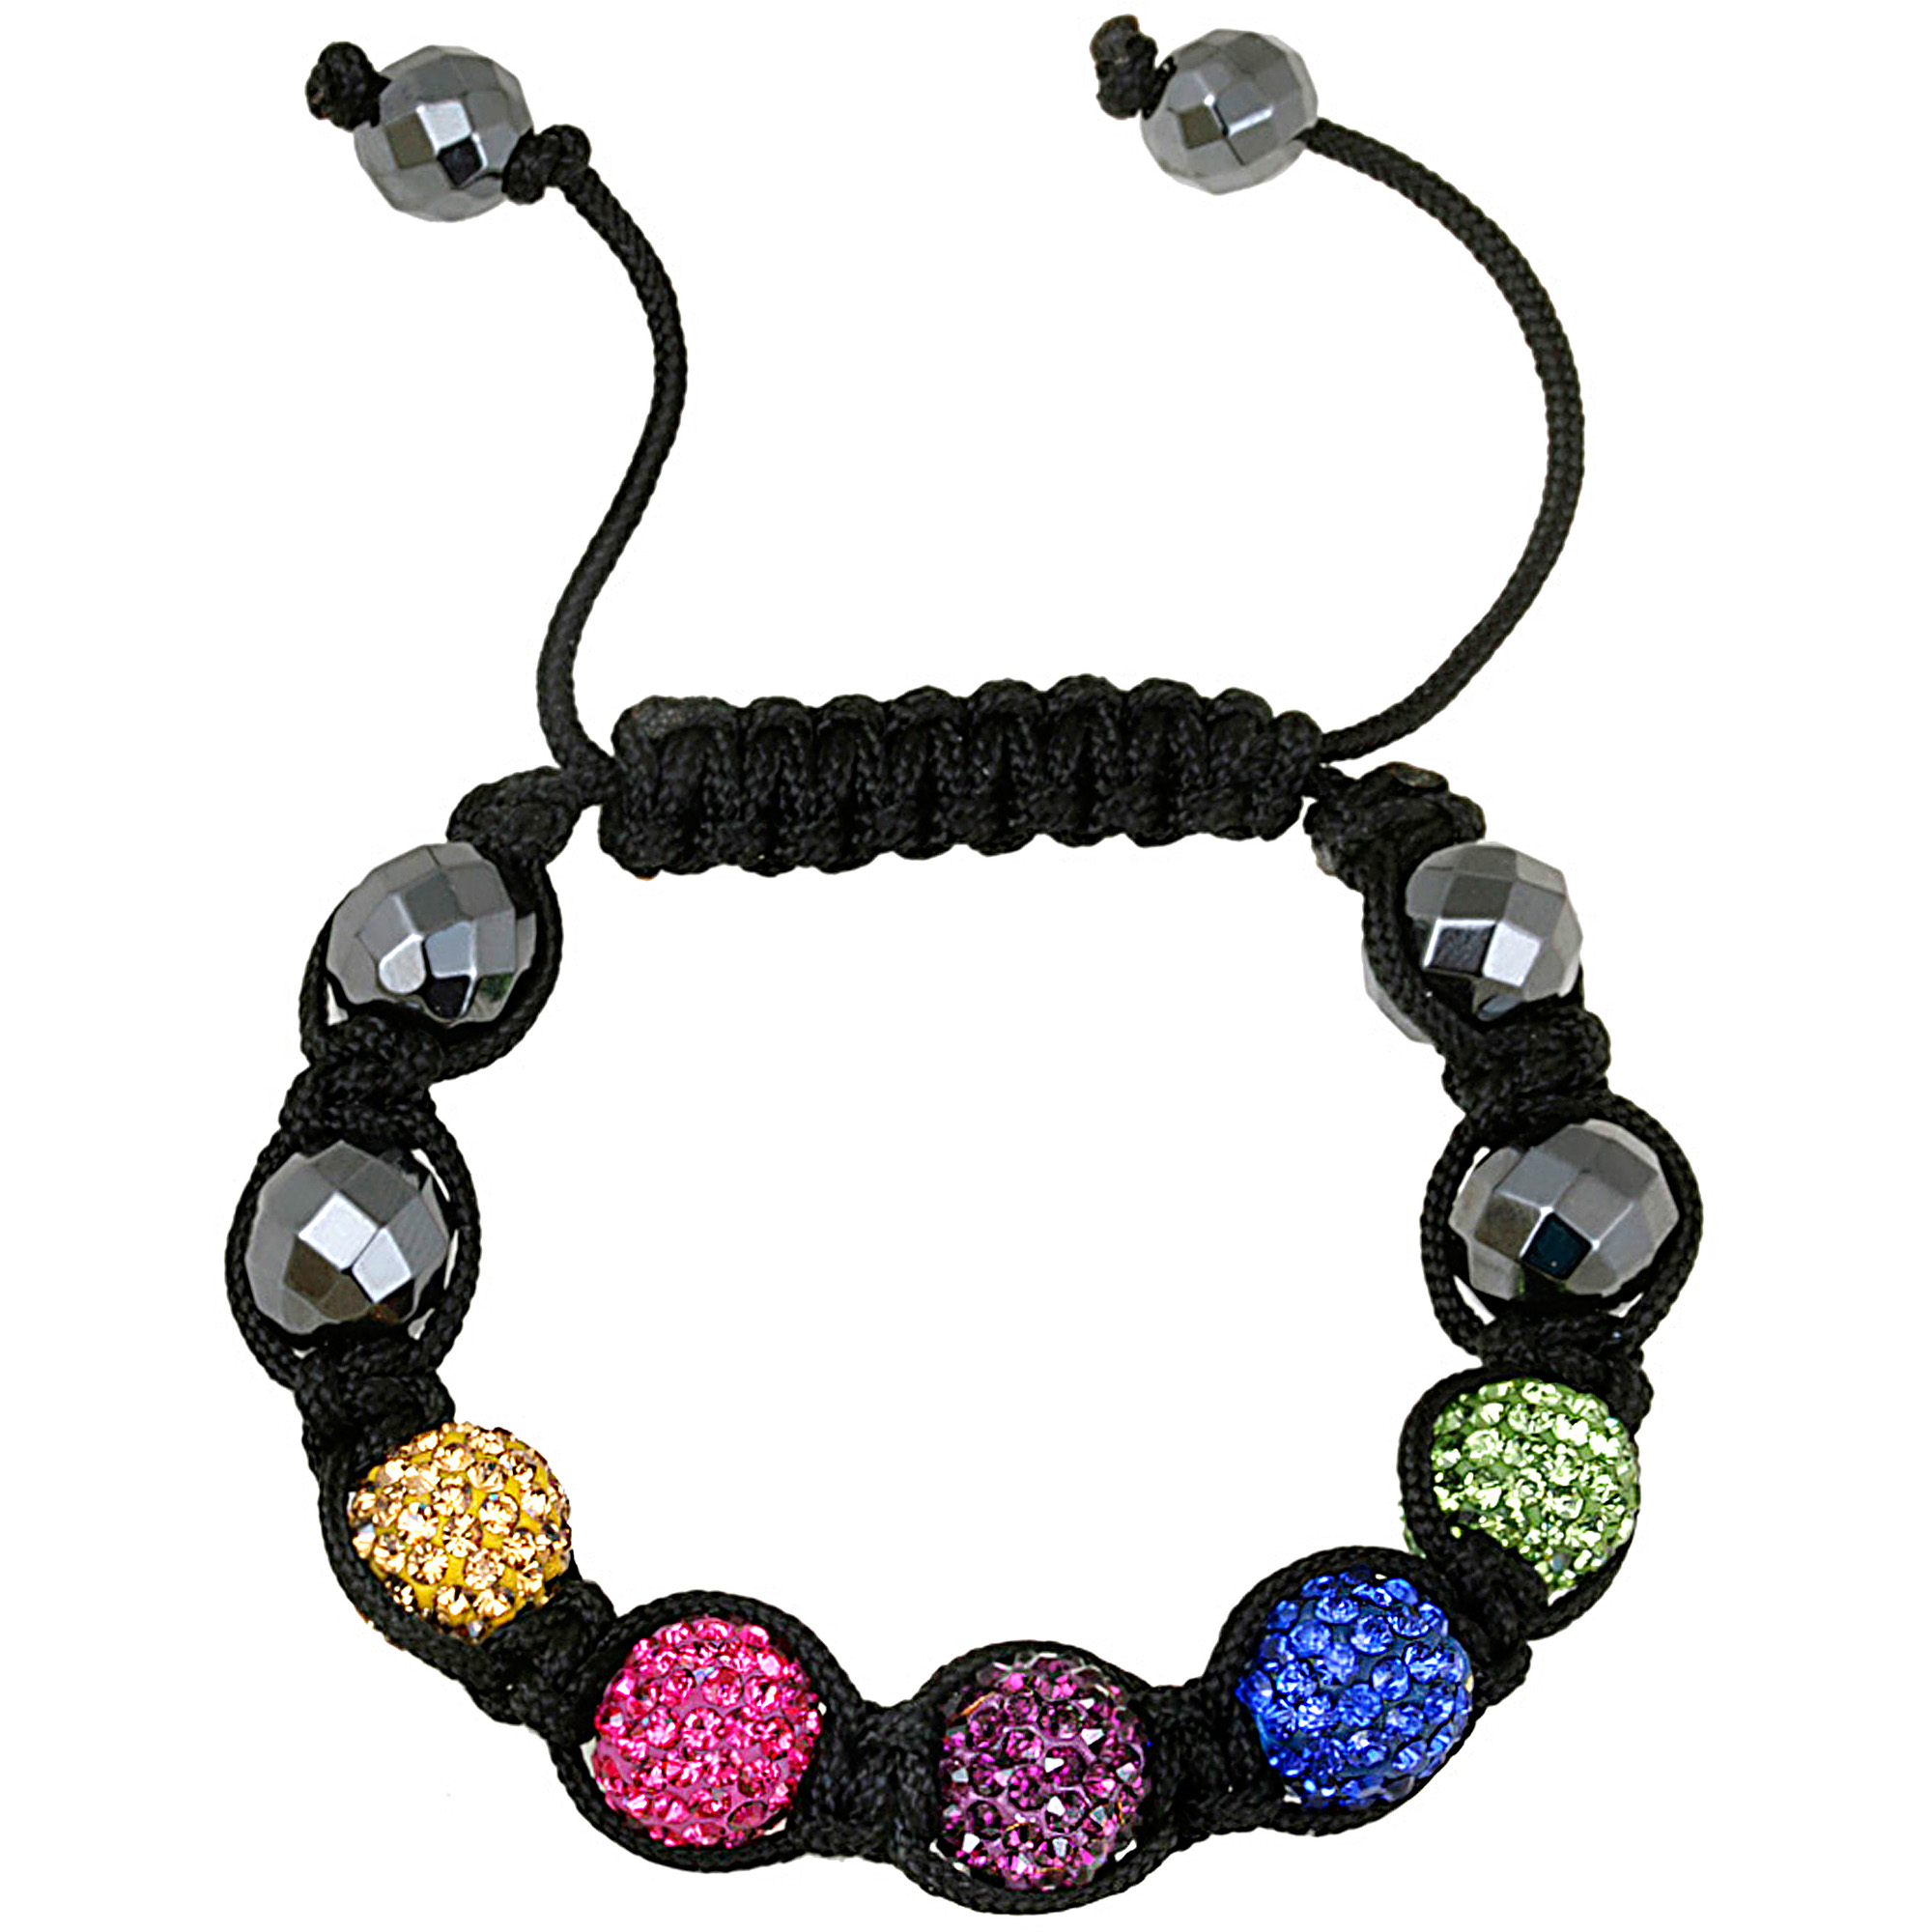 Crystal Assorted Color Fireball & Hematite 10mm Shamballa Adjustable Bracelet, 7.5""